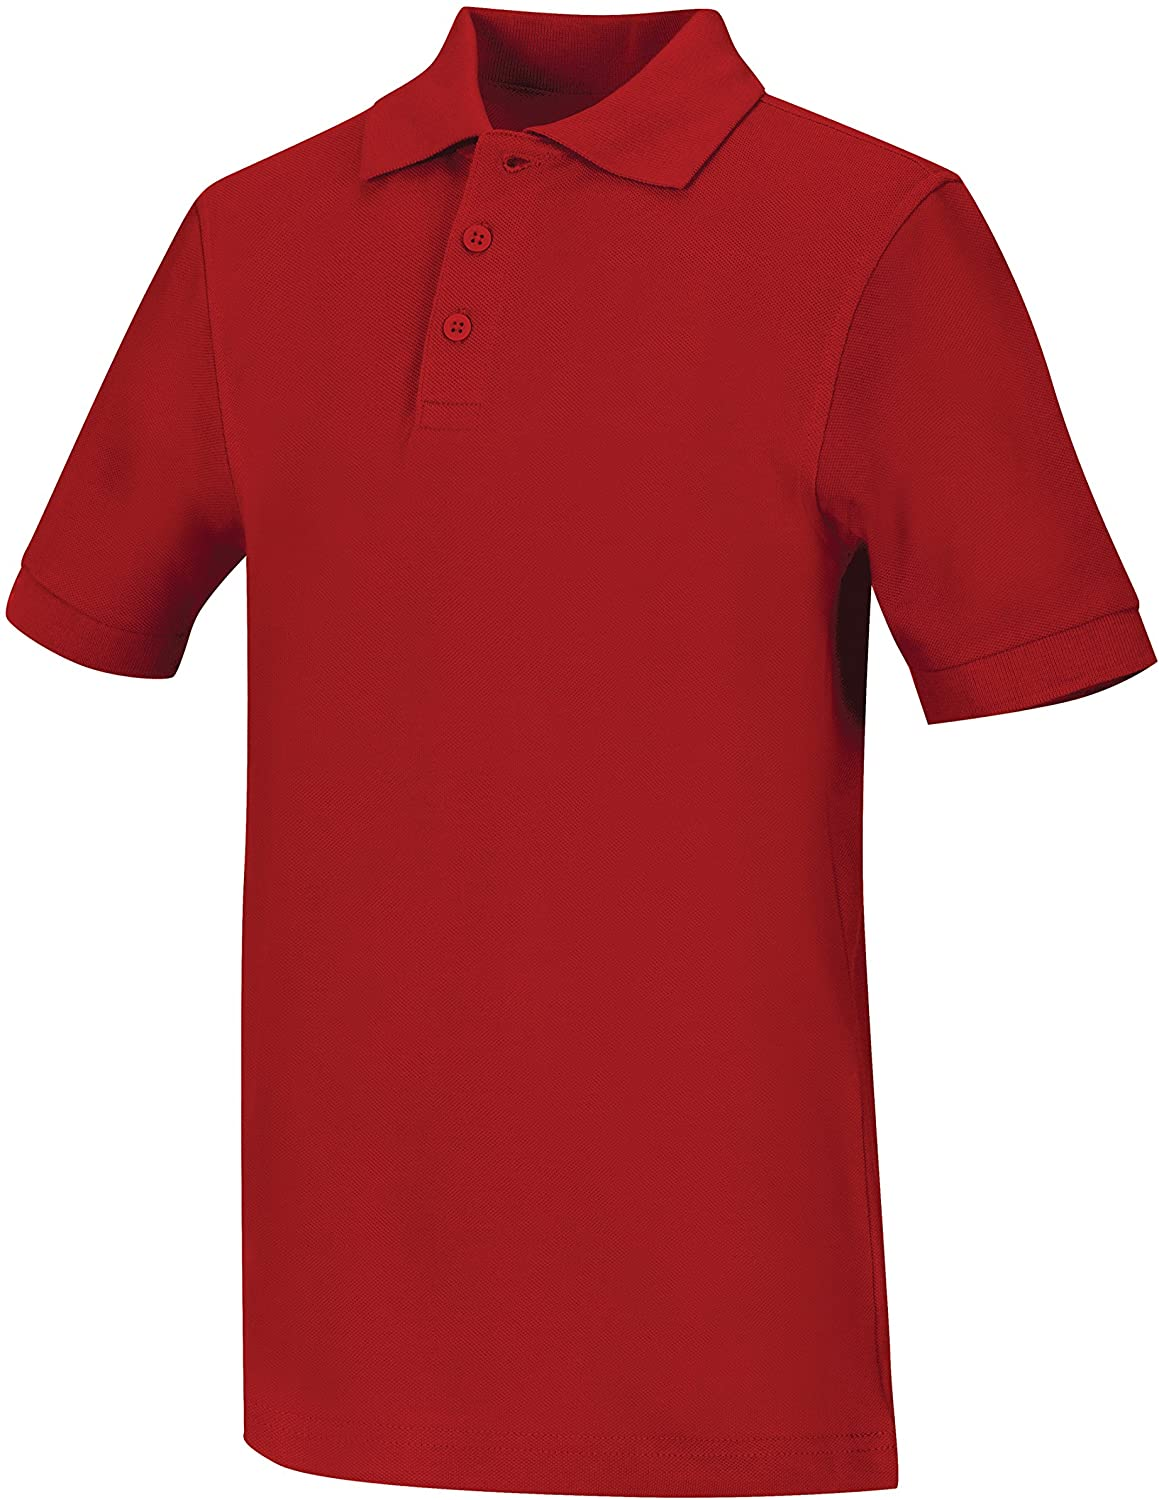 Classroom Big Boys' Uniform Pique Short Sleeve Polo